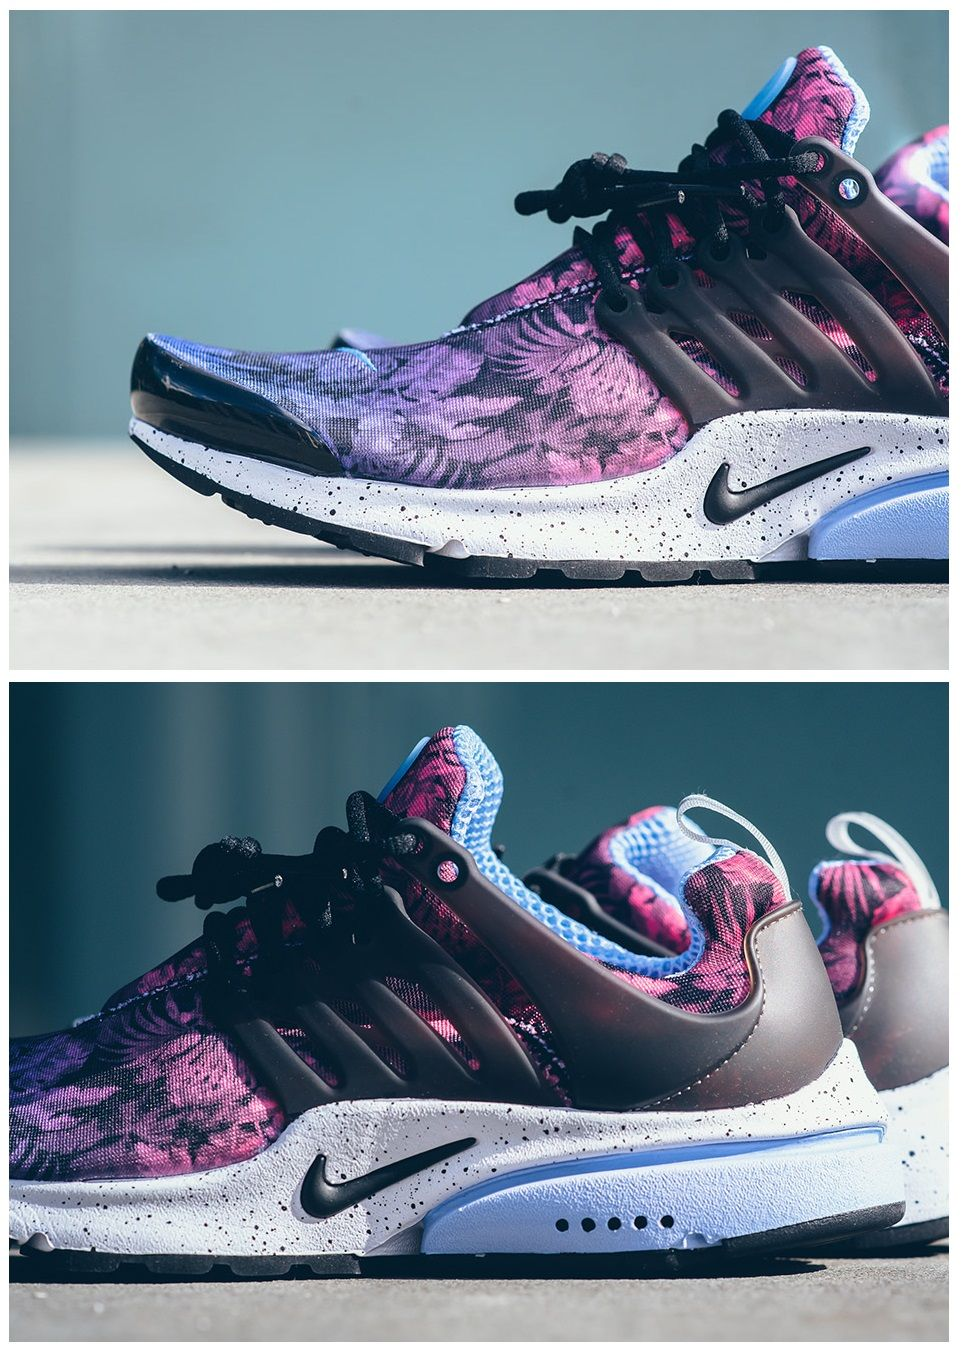 2d815287828e2 Nike Air Presto 'Palm Trees' | 鞋 | Nike shoes, Nike shoes cheap, Shoes